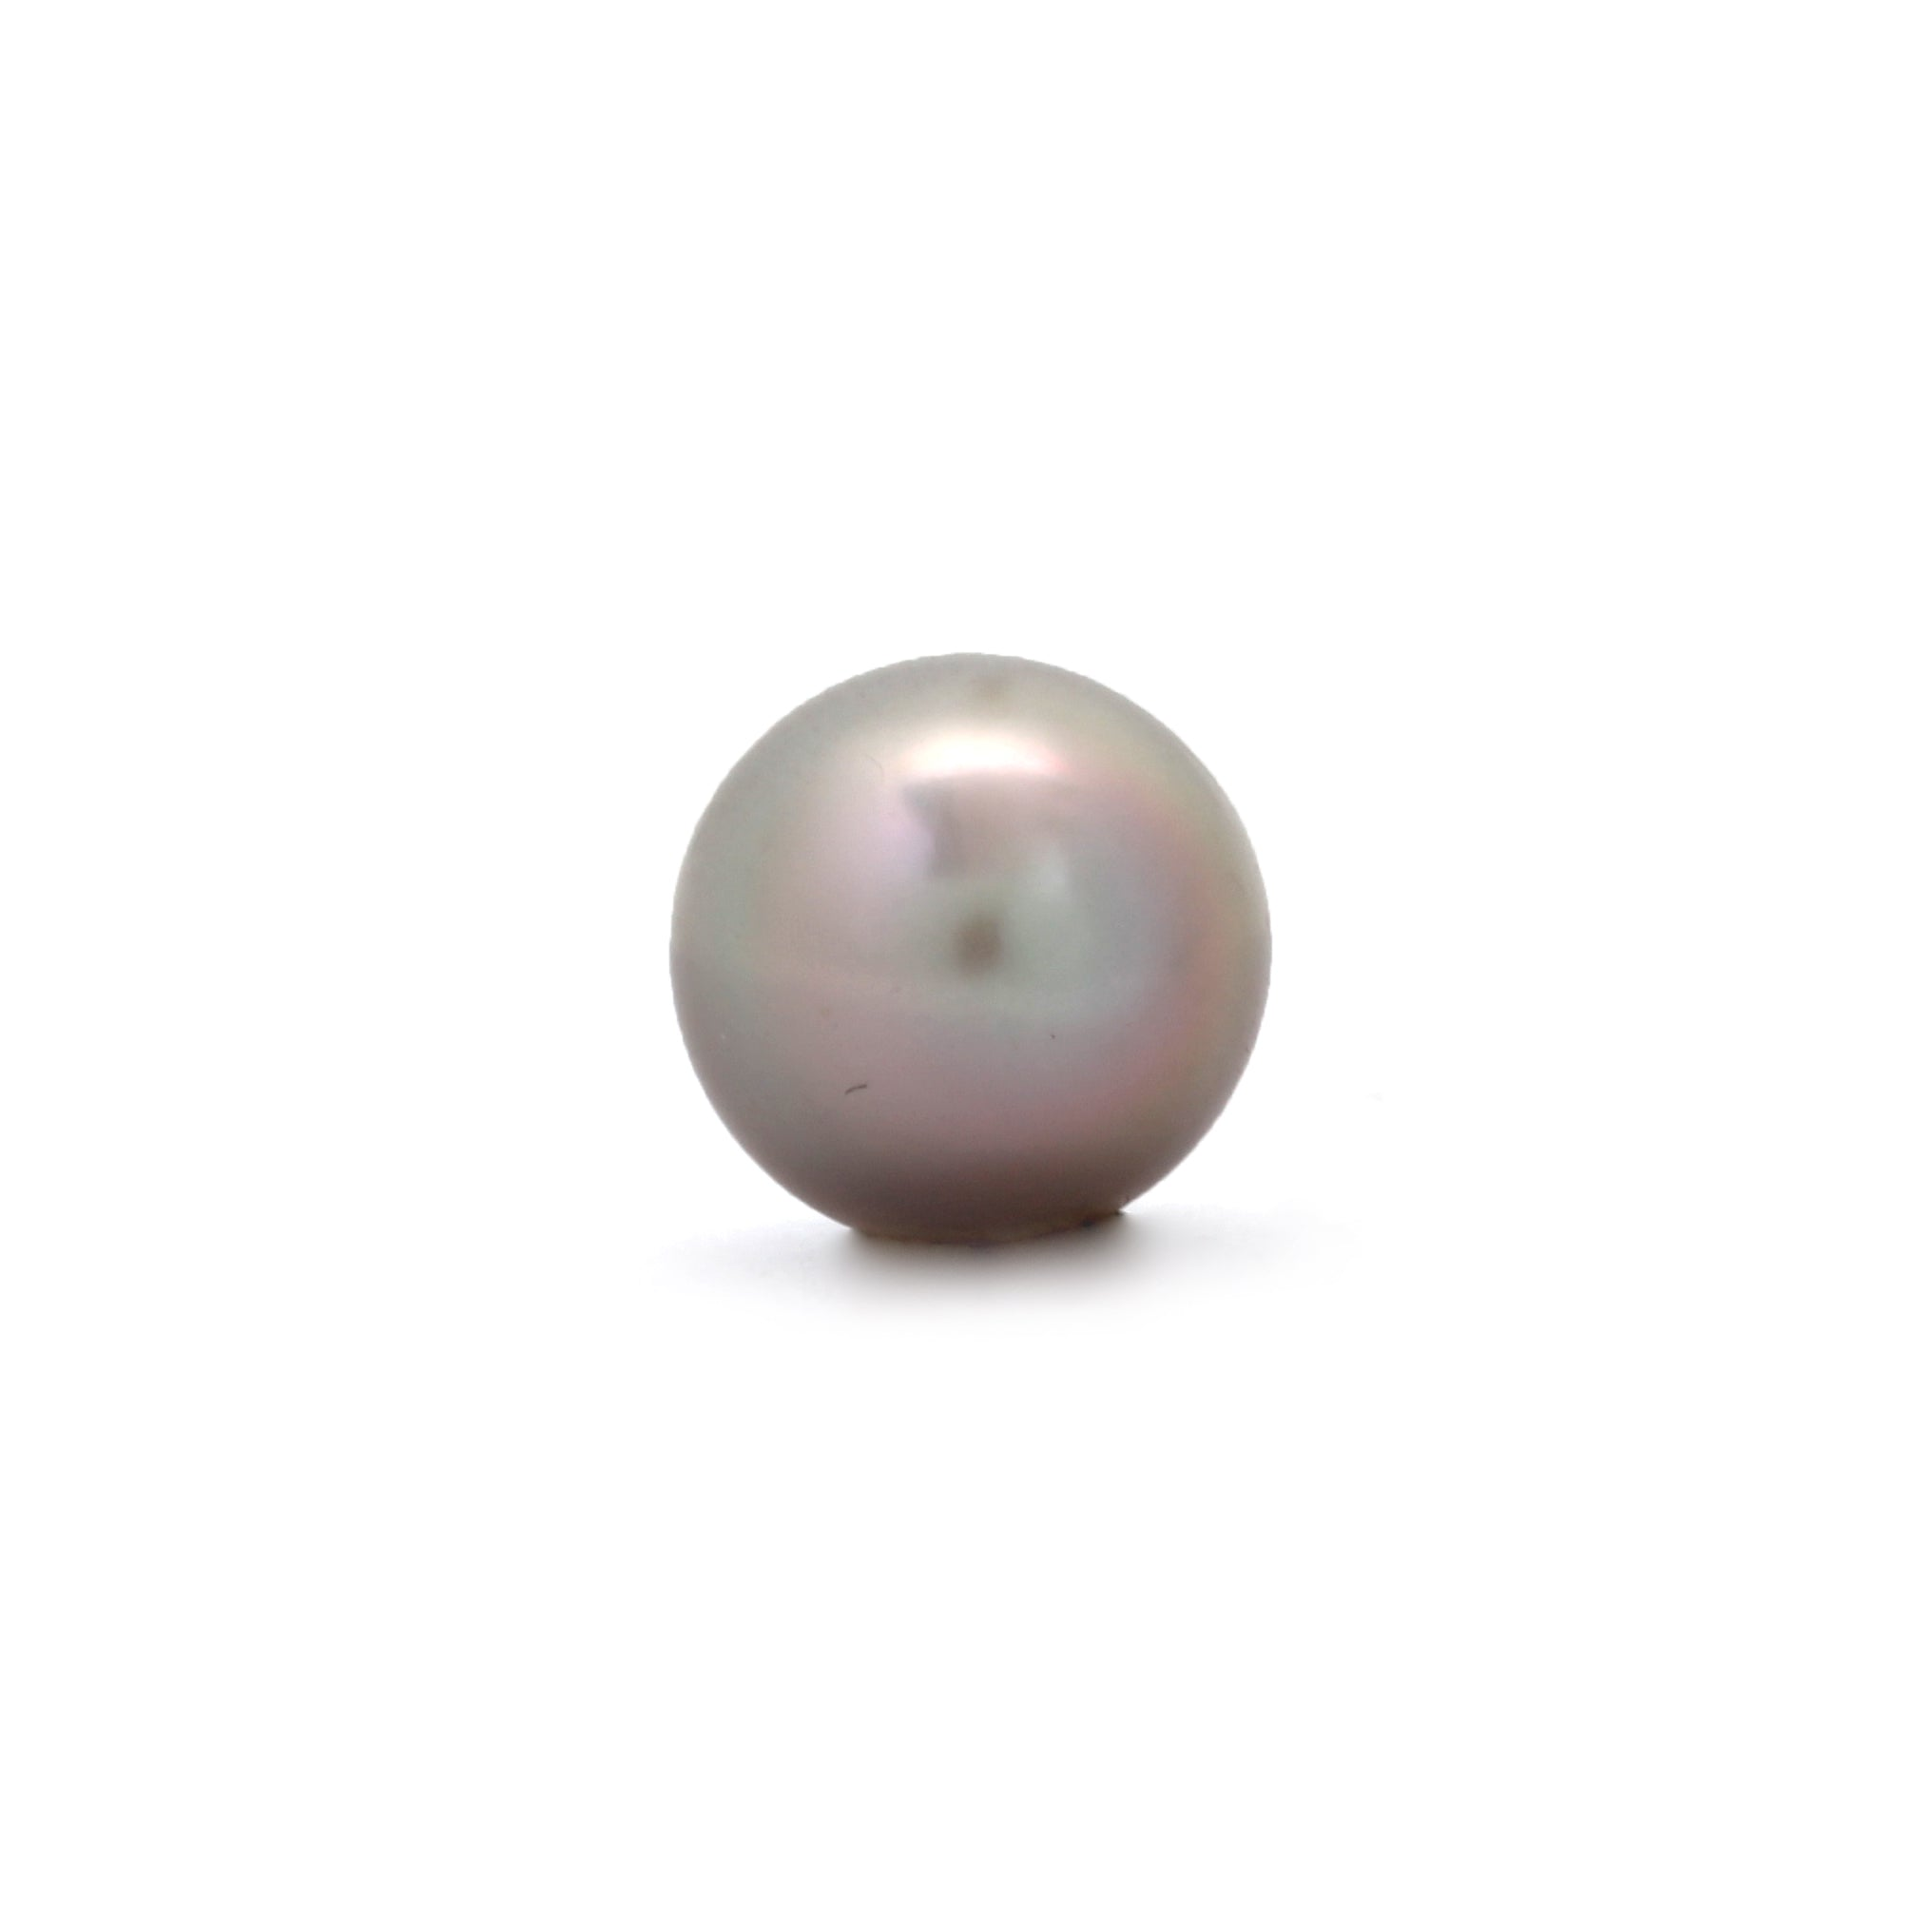 Baroque shaped 8.7 x 8.9 mm Cortez Pearl